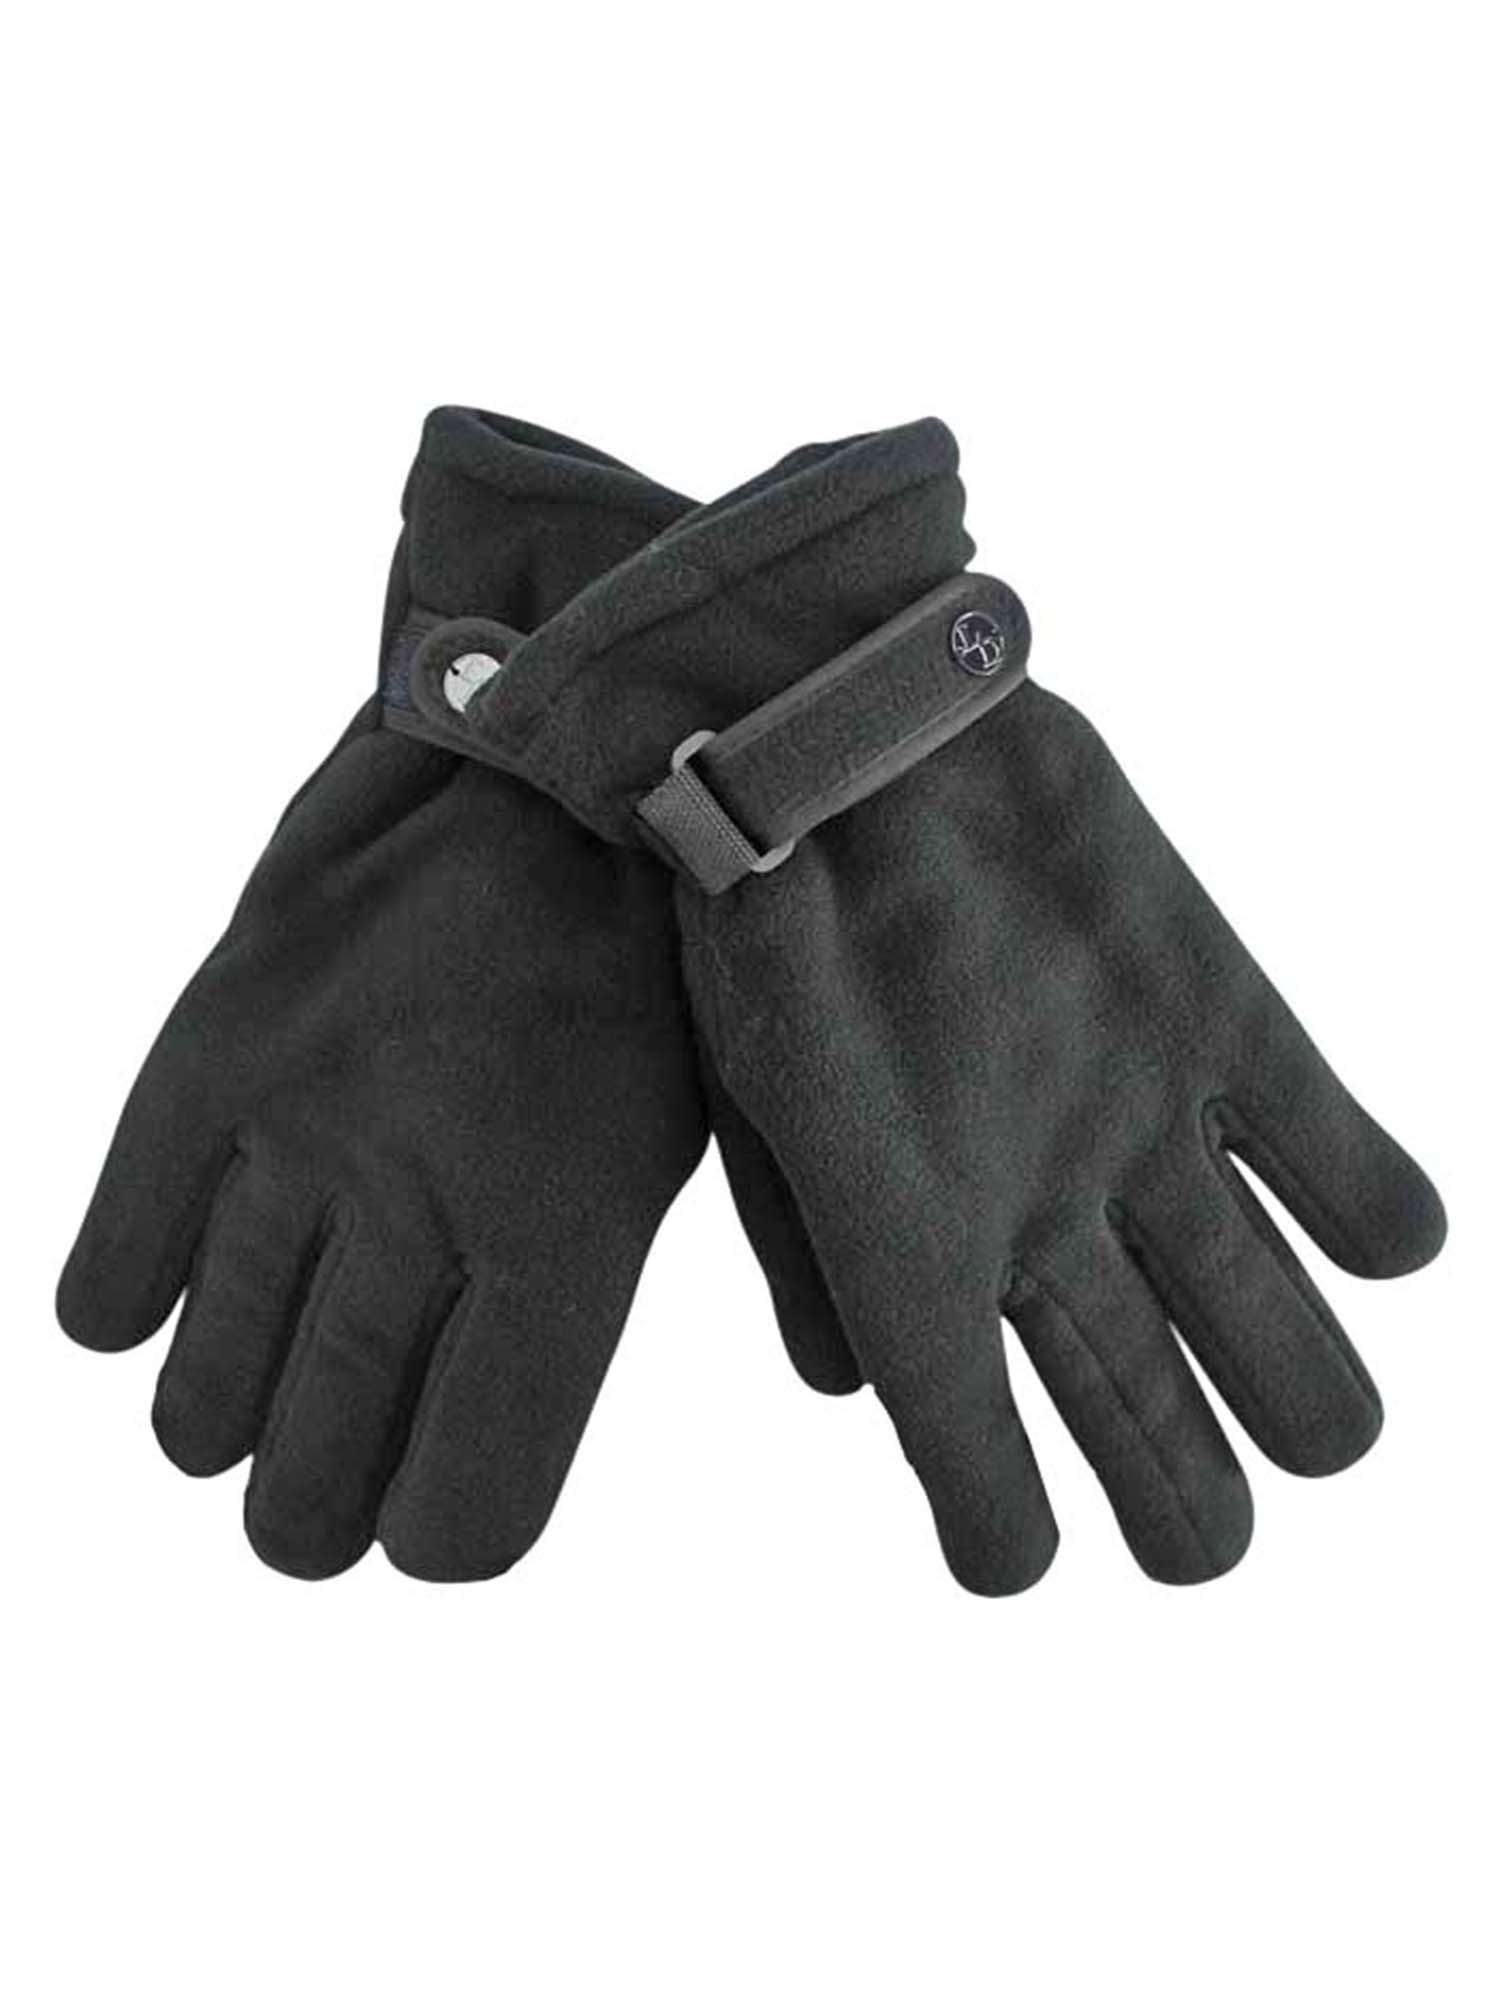 Polar Fleece Mens Thermal Insulated Gloves by Insulated Gloves